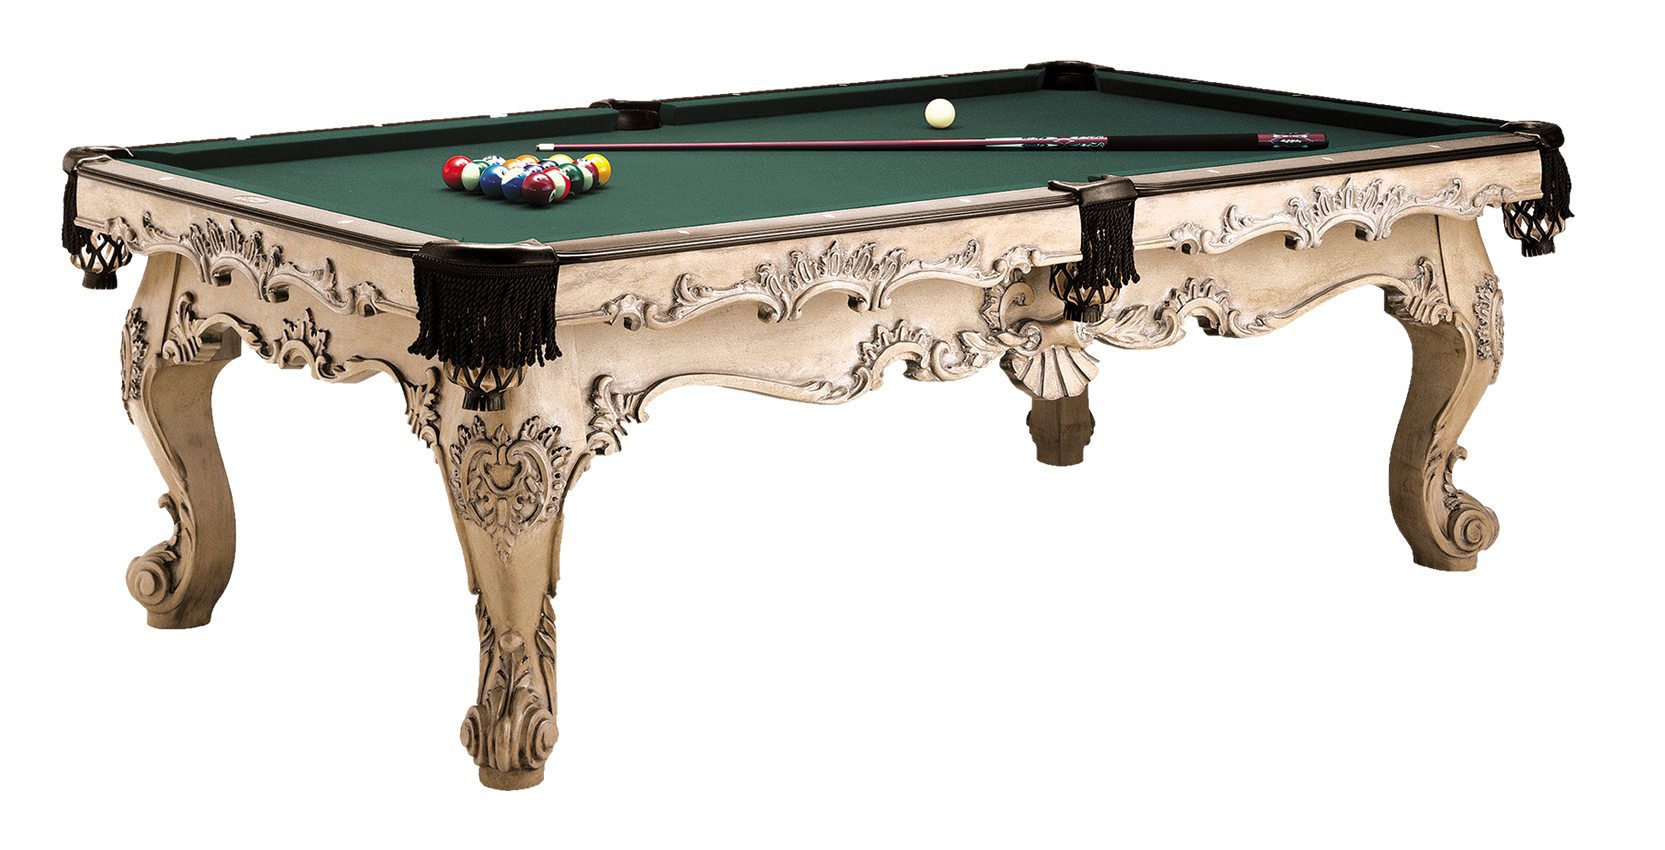 New Rococo Pool Table Olhausen Montgomeryville Pa